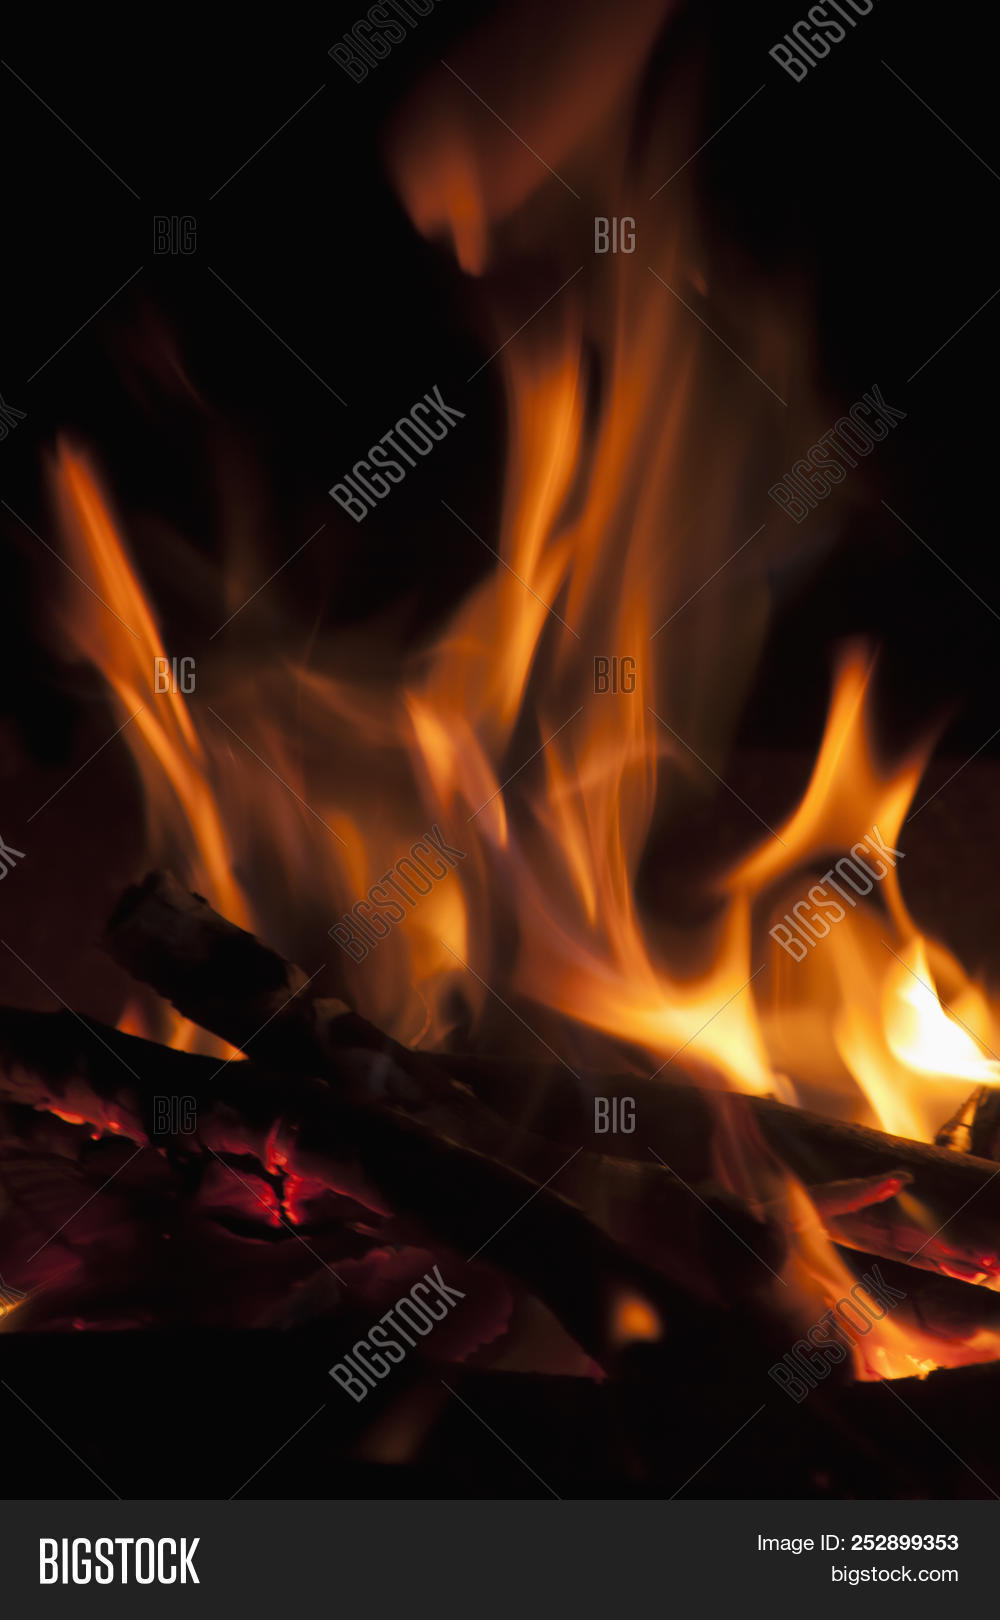 Background Fire Symbol Image Photo Free Trial Bigstock